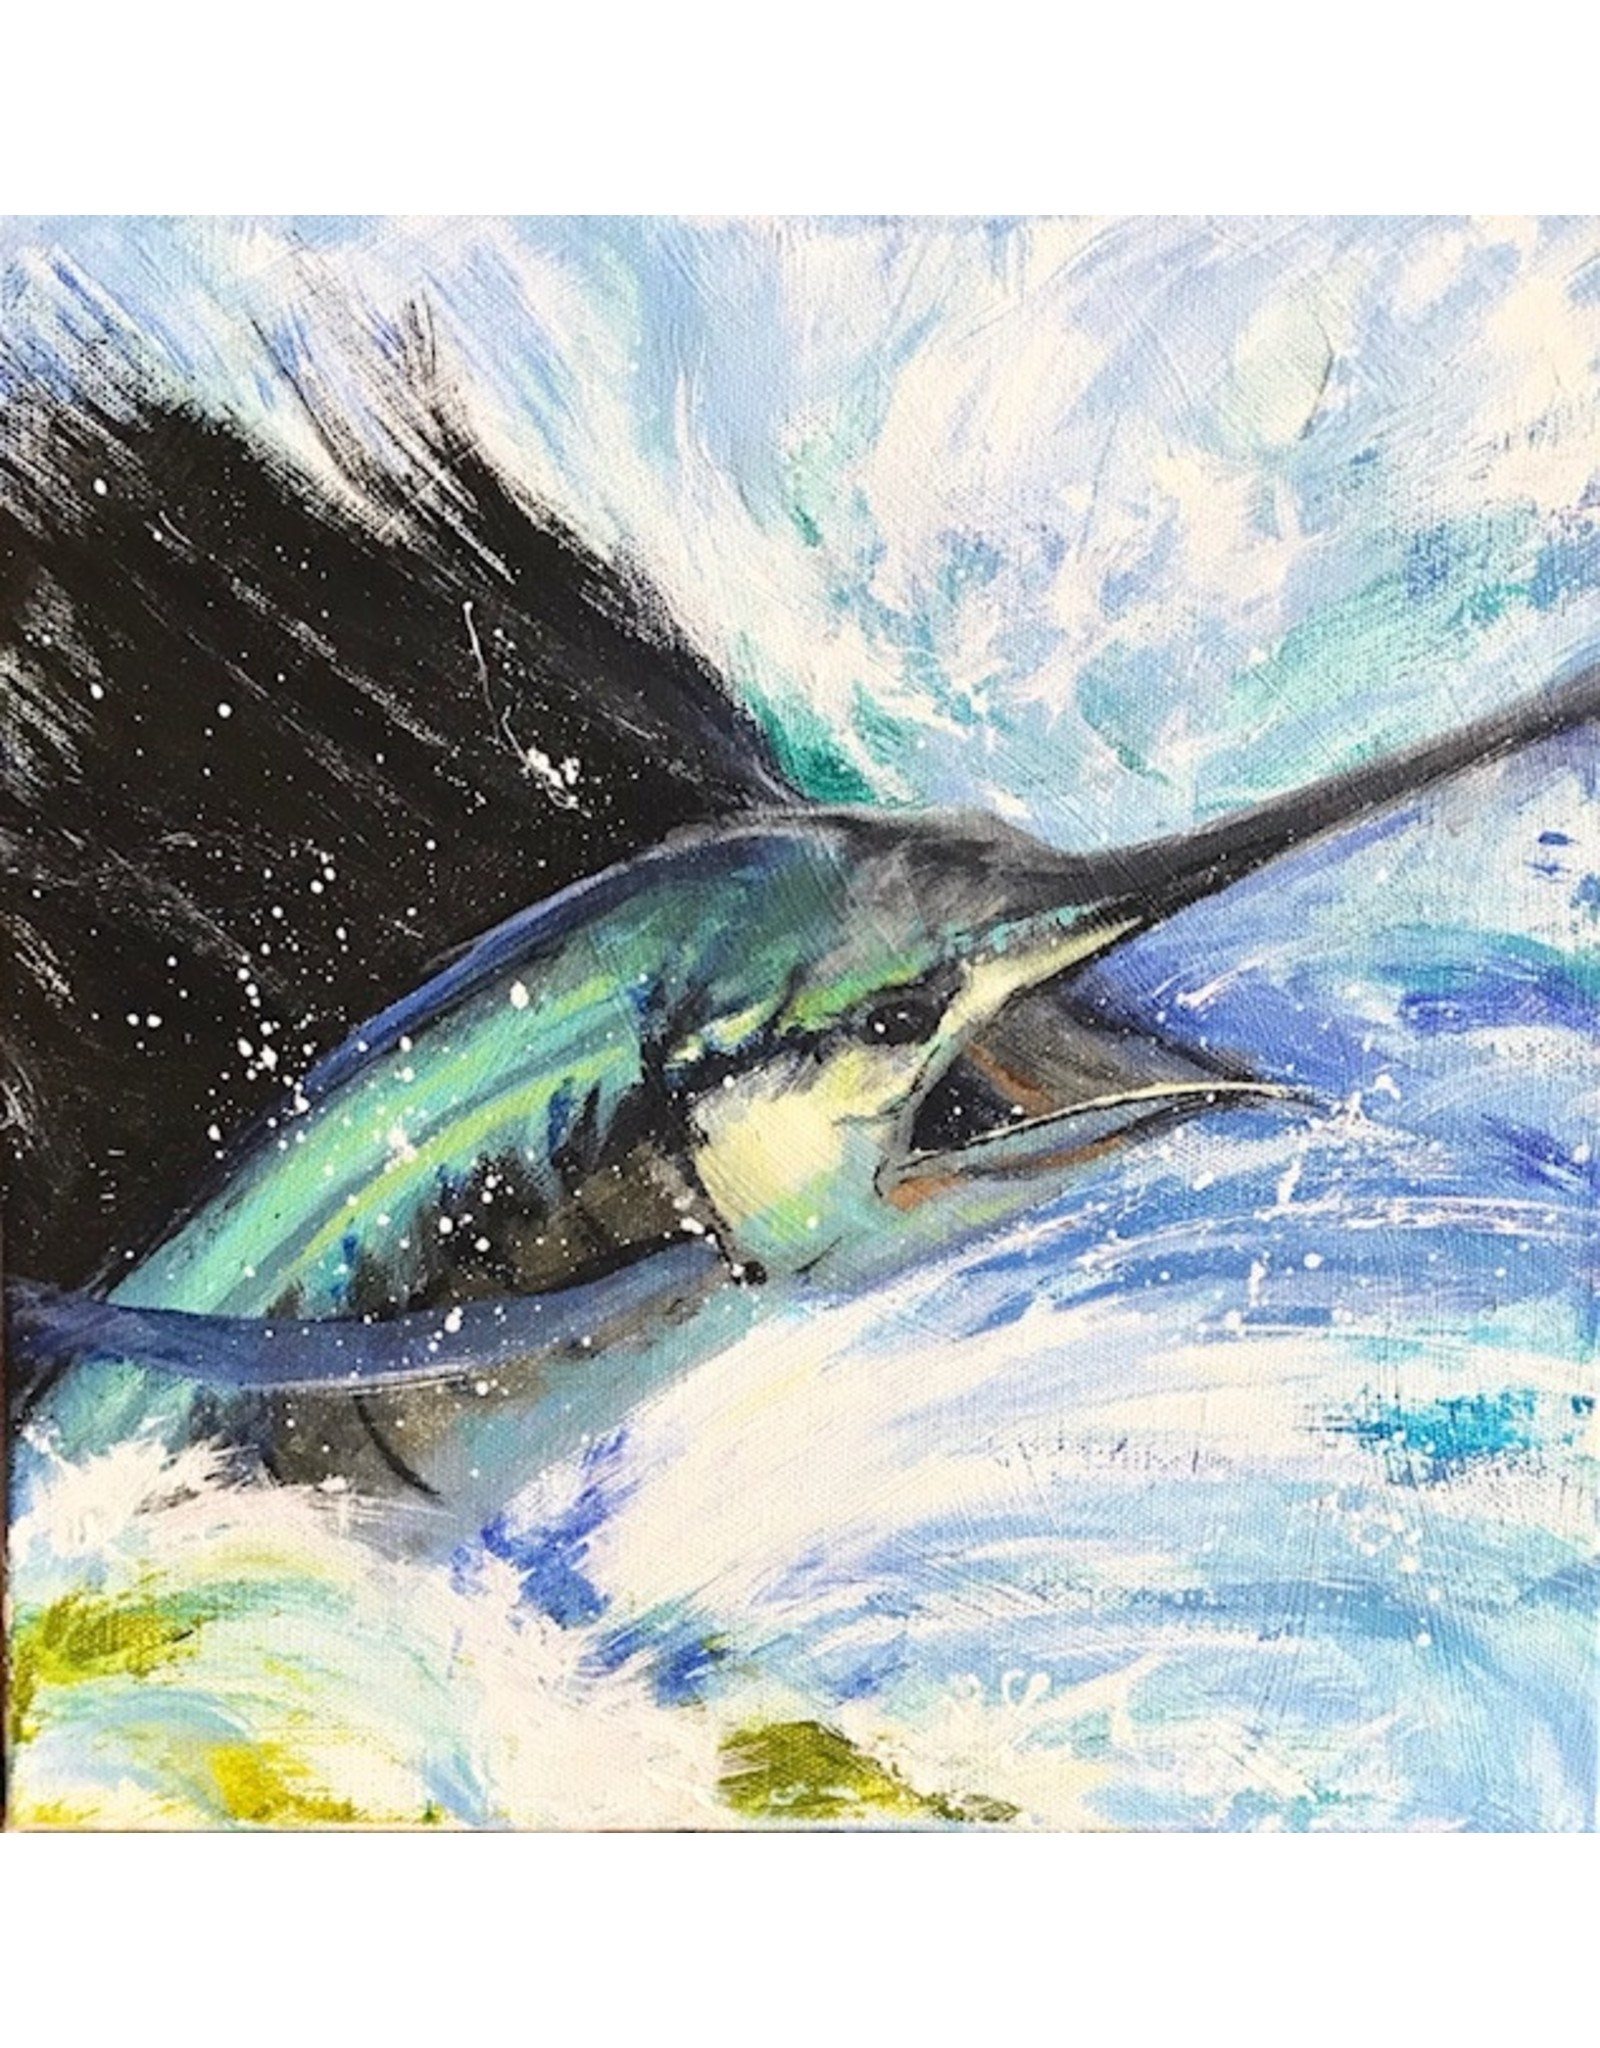 Michaelann Bellerjeau Sailfish 1 (original acrylic, gallery wrap, 12x12, MICB)